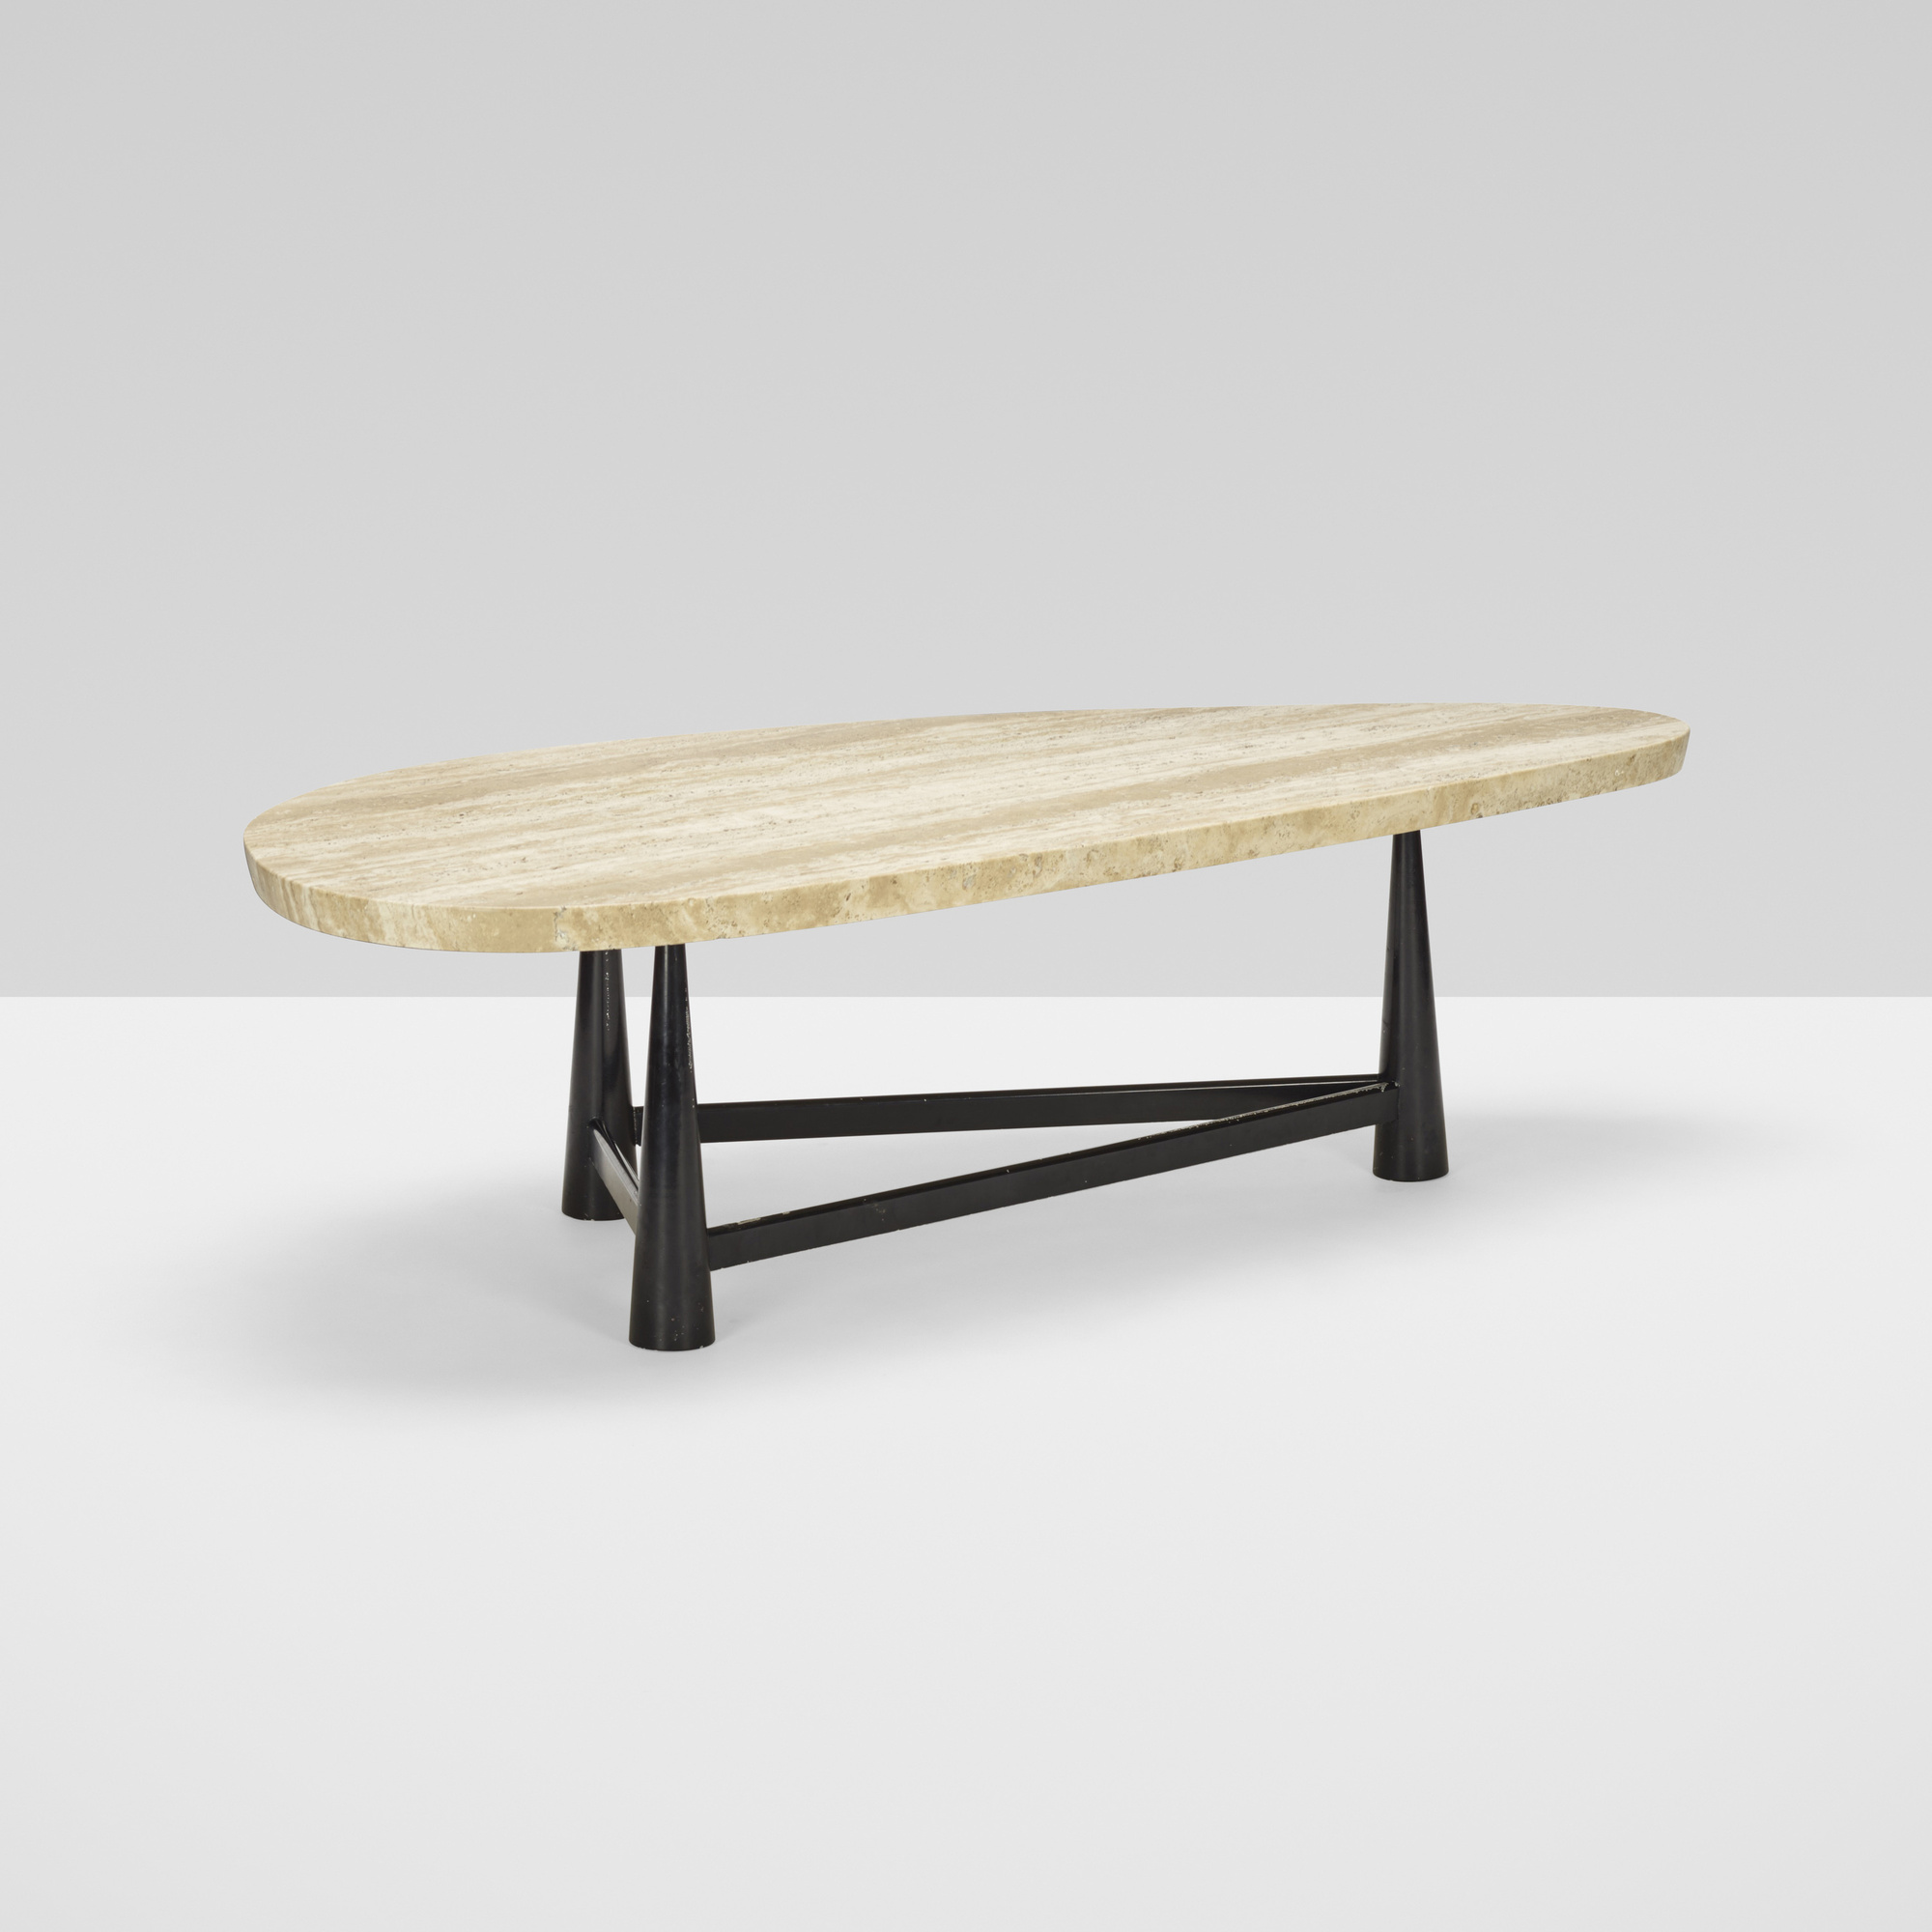 352: Edward Wormley / coffee table, model 521 (2 of 2)